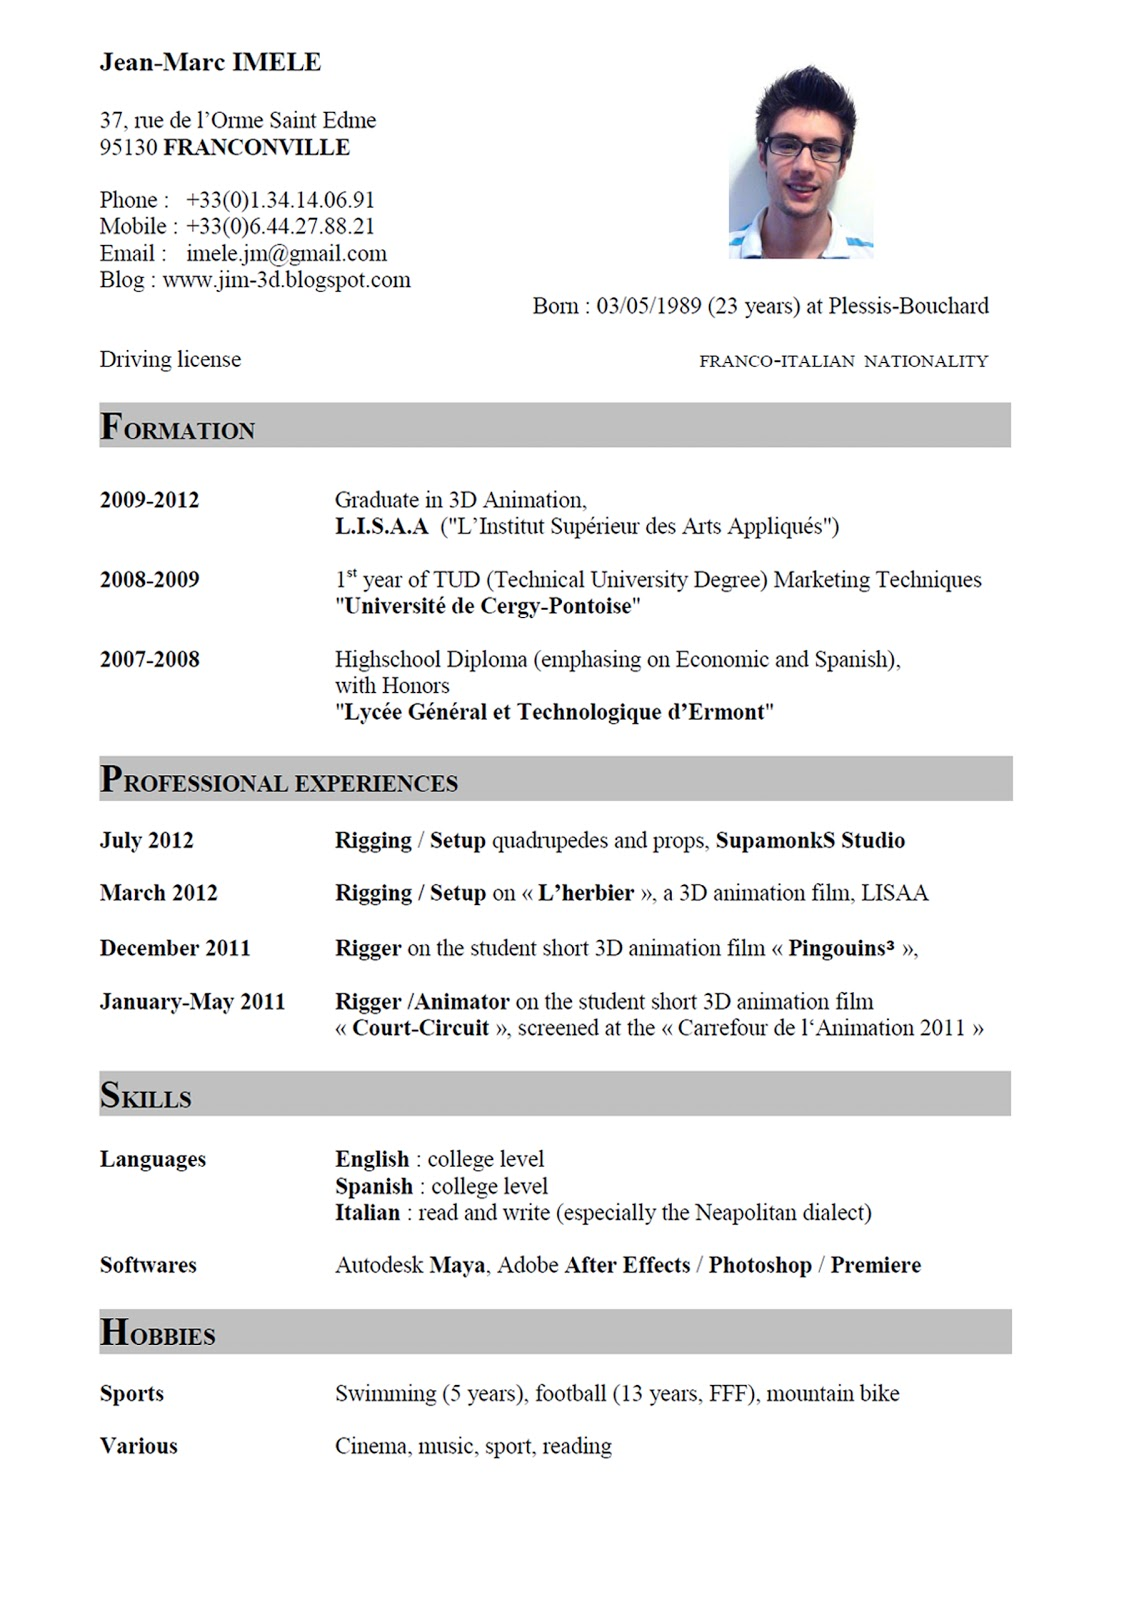 how to create a curriculum vitae online profesional resume for job how to create a curriculum vitae online how to make curriculum vitae online for web